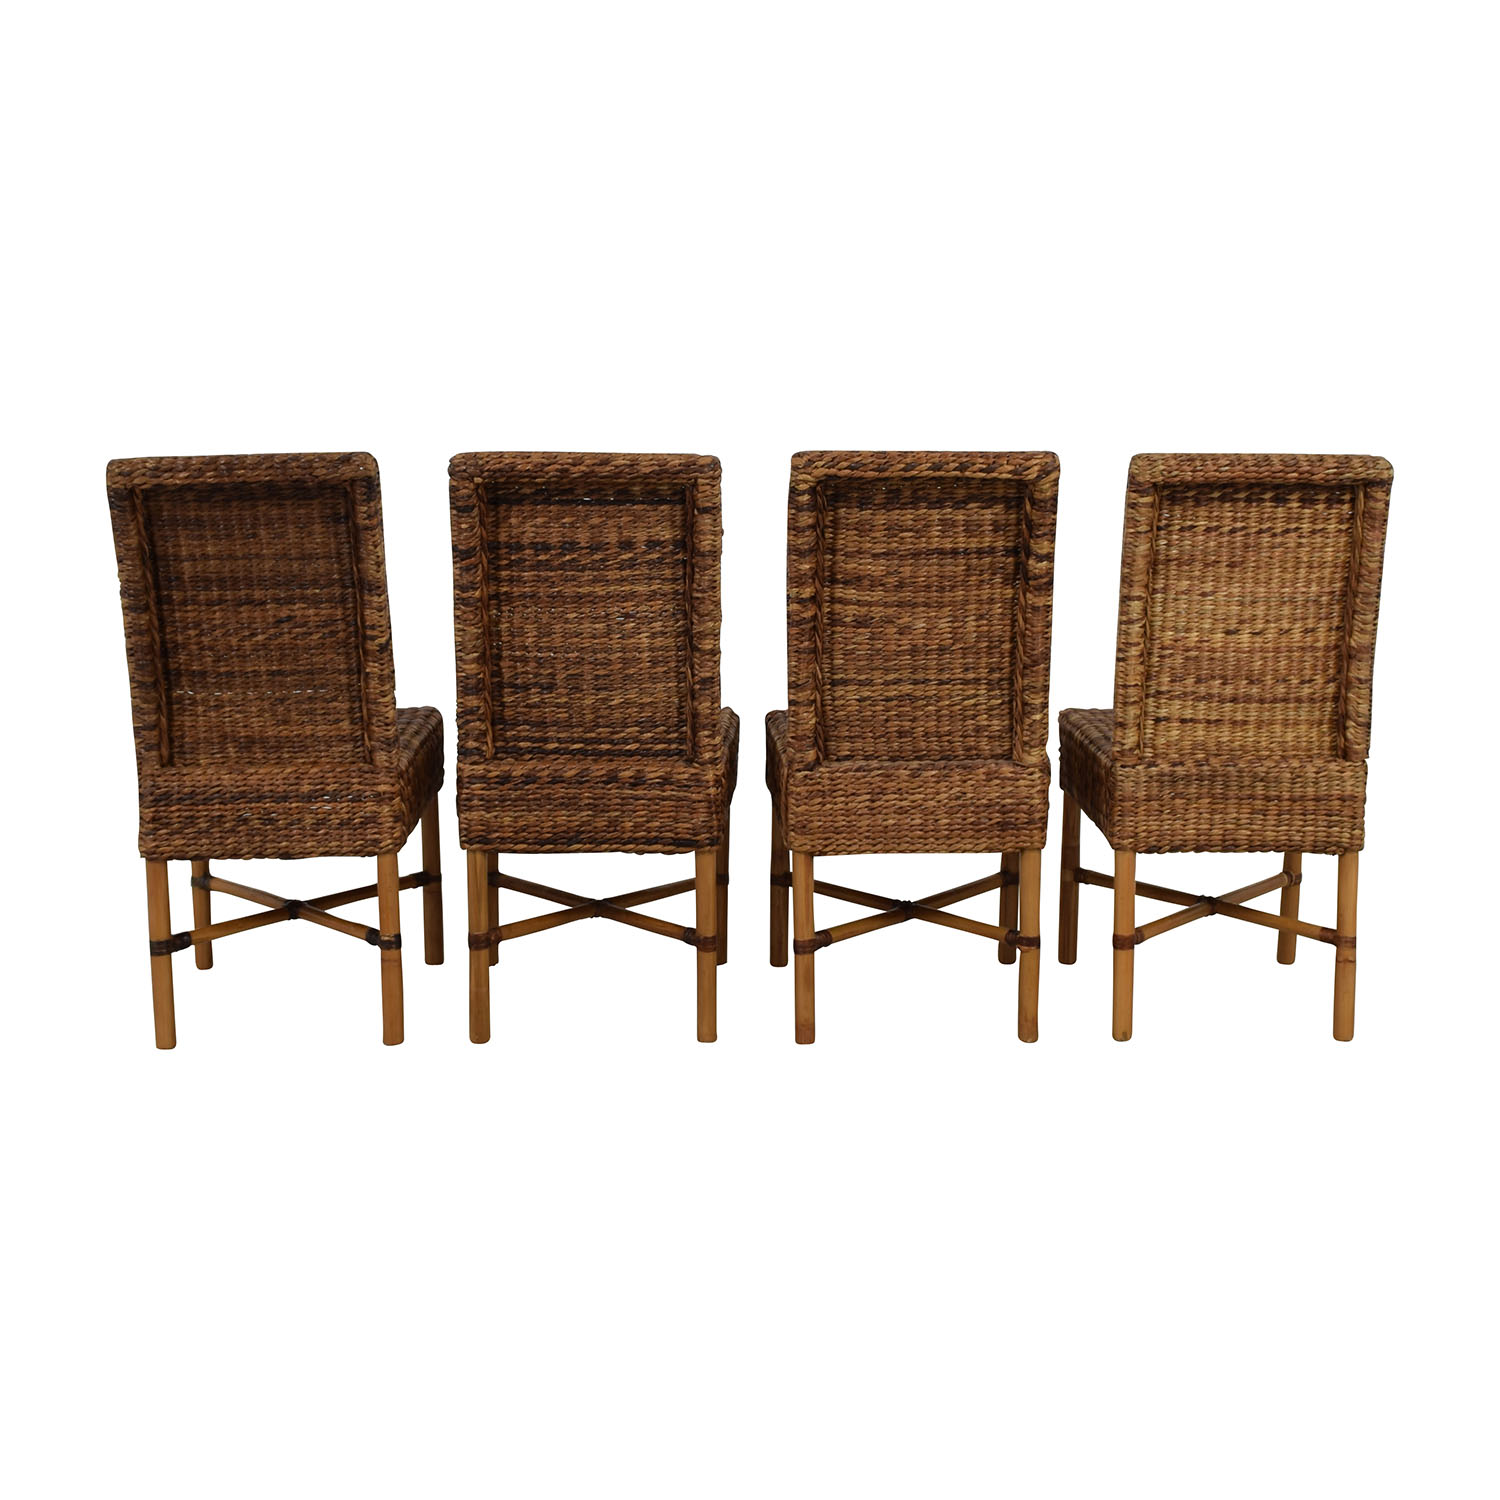 Wicker Brown Dining Chairs Brown/ Beige